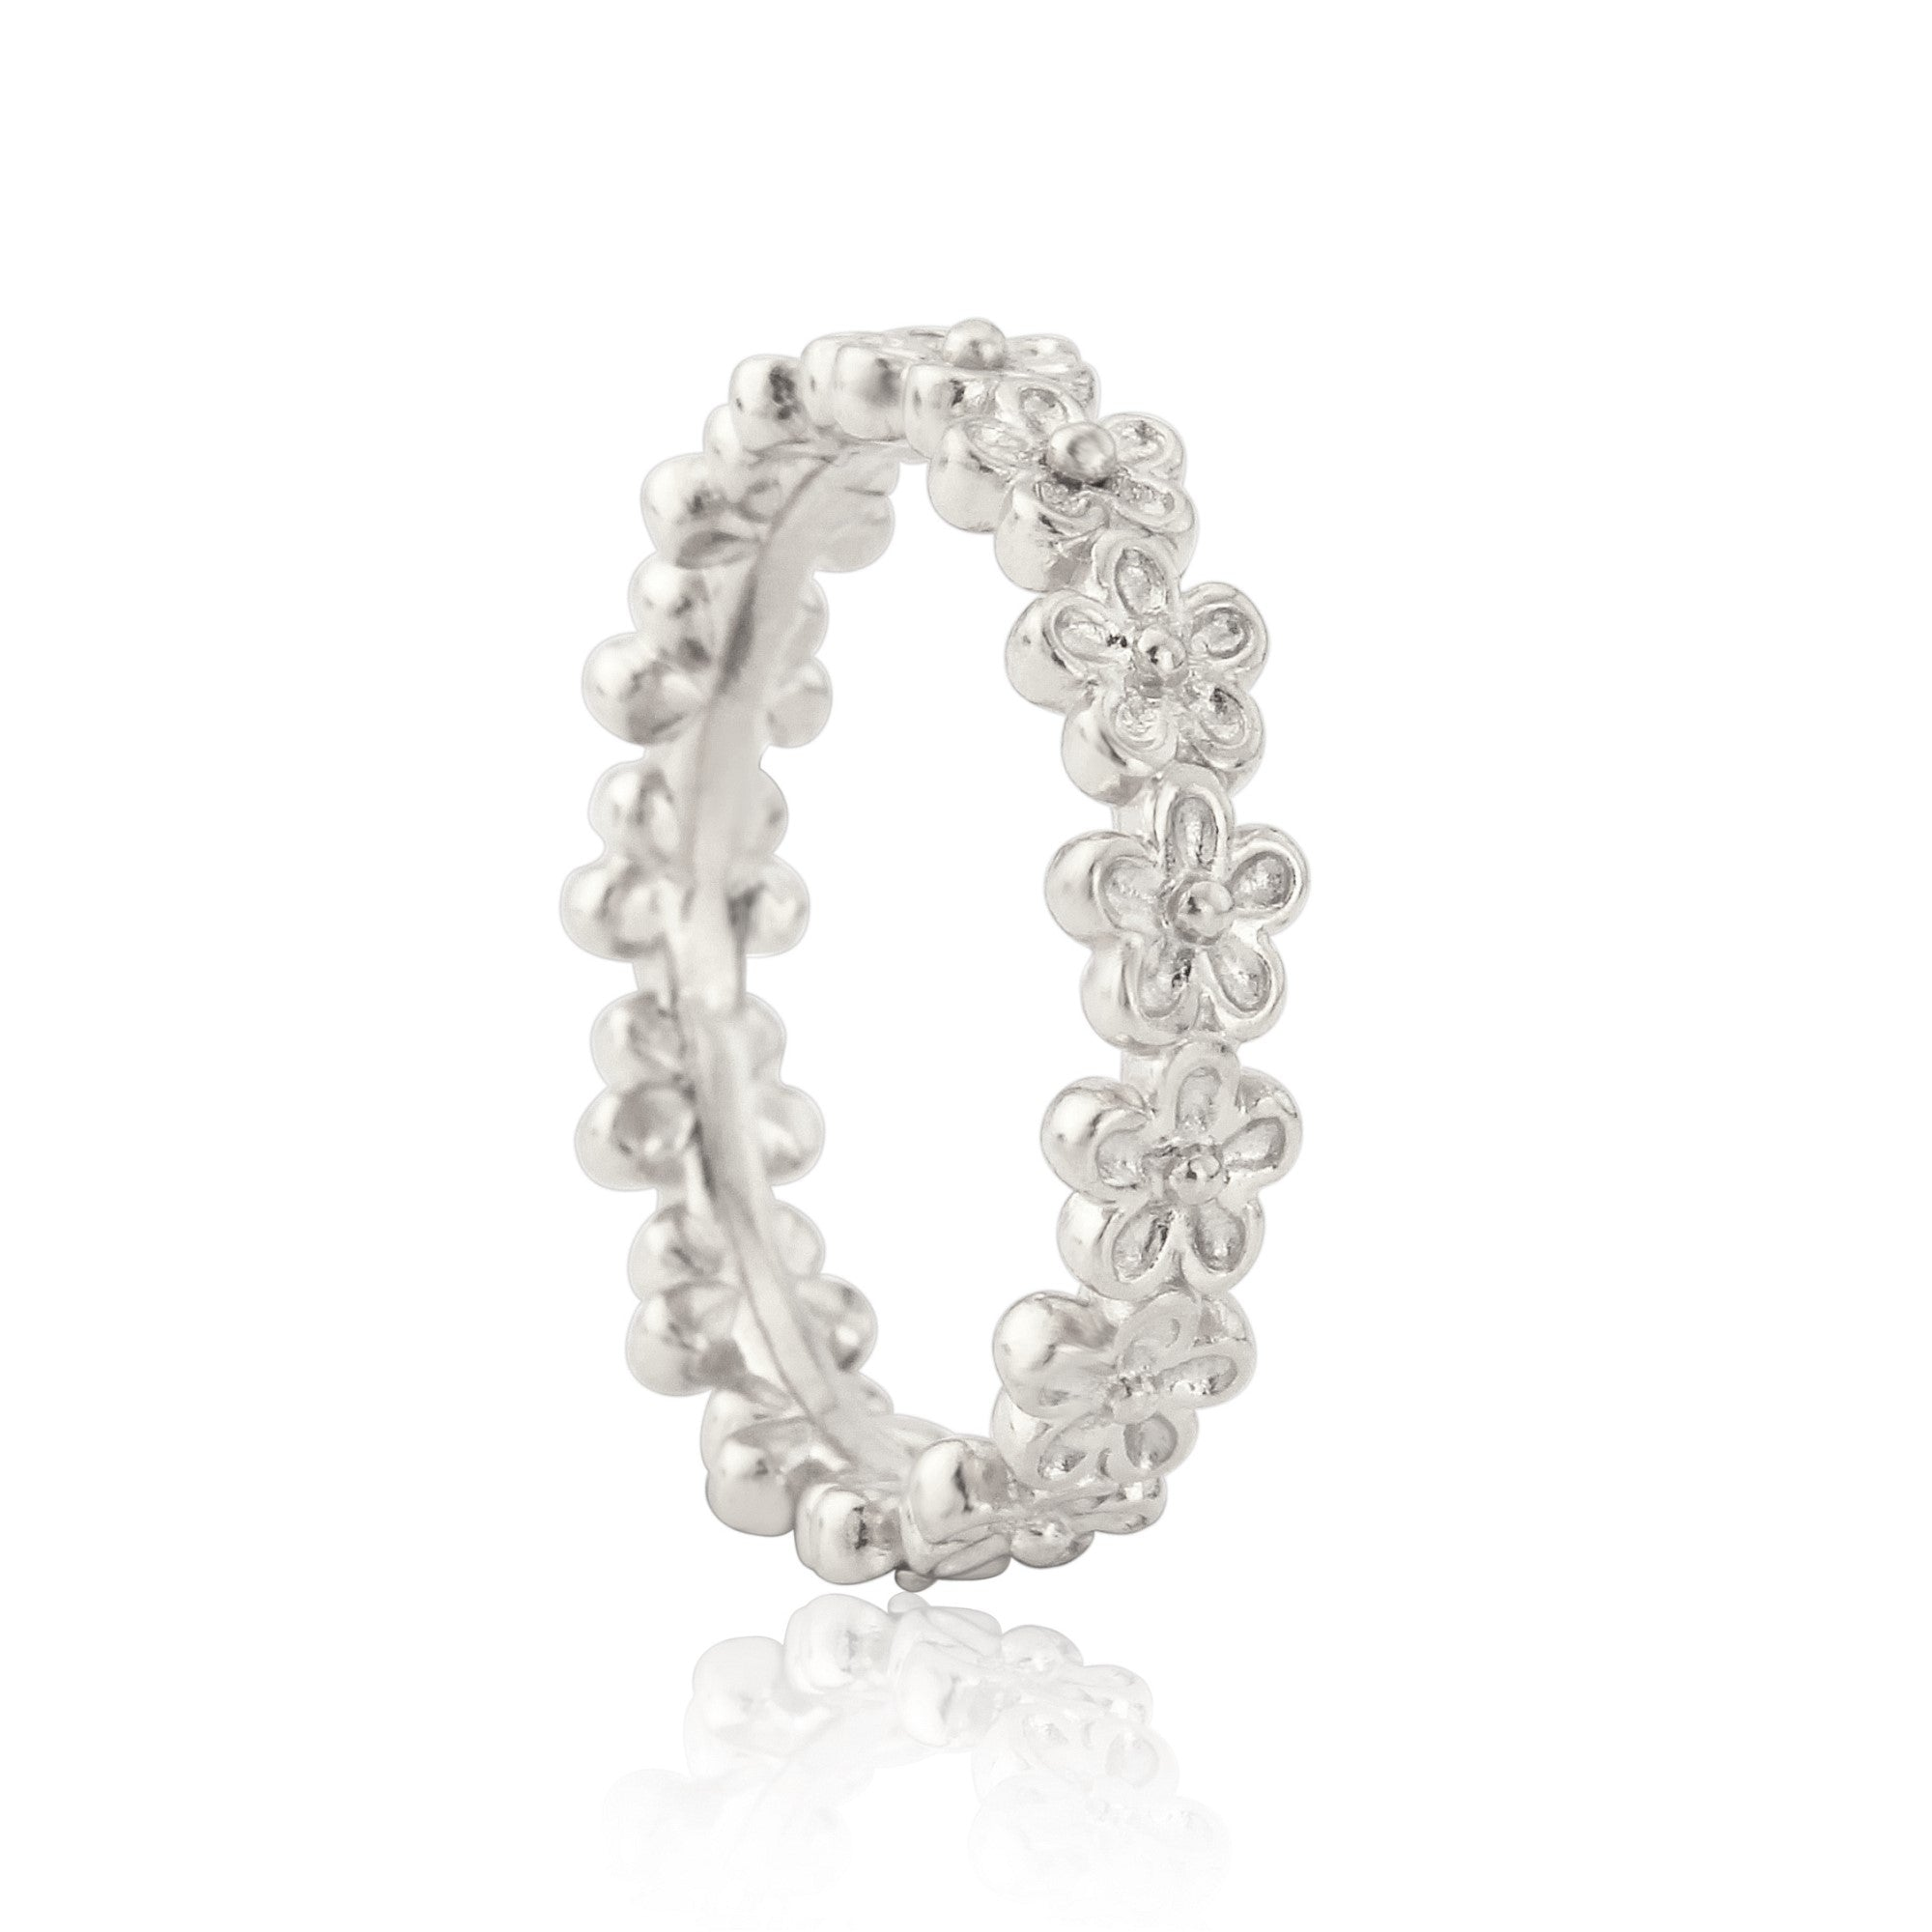 Silver Garland Flower eternity Stacking Ring